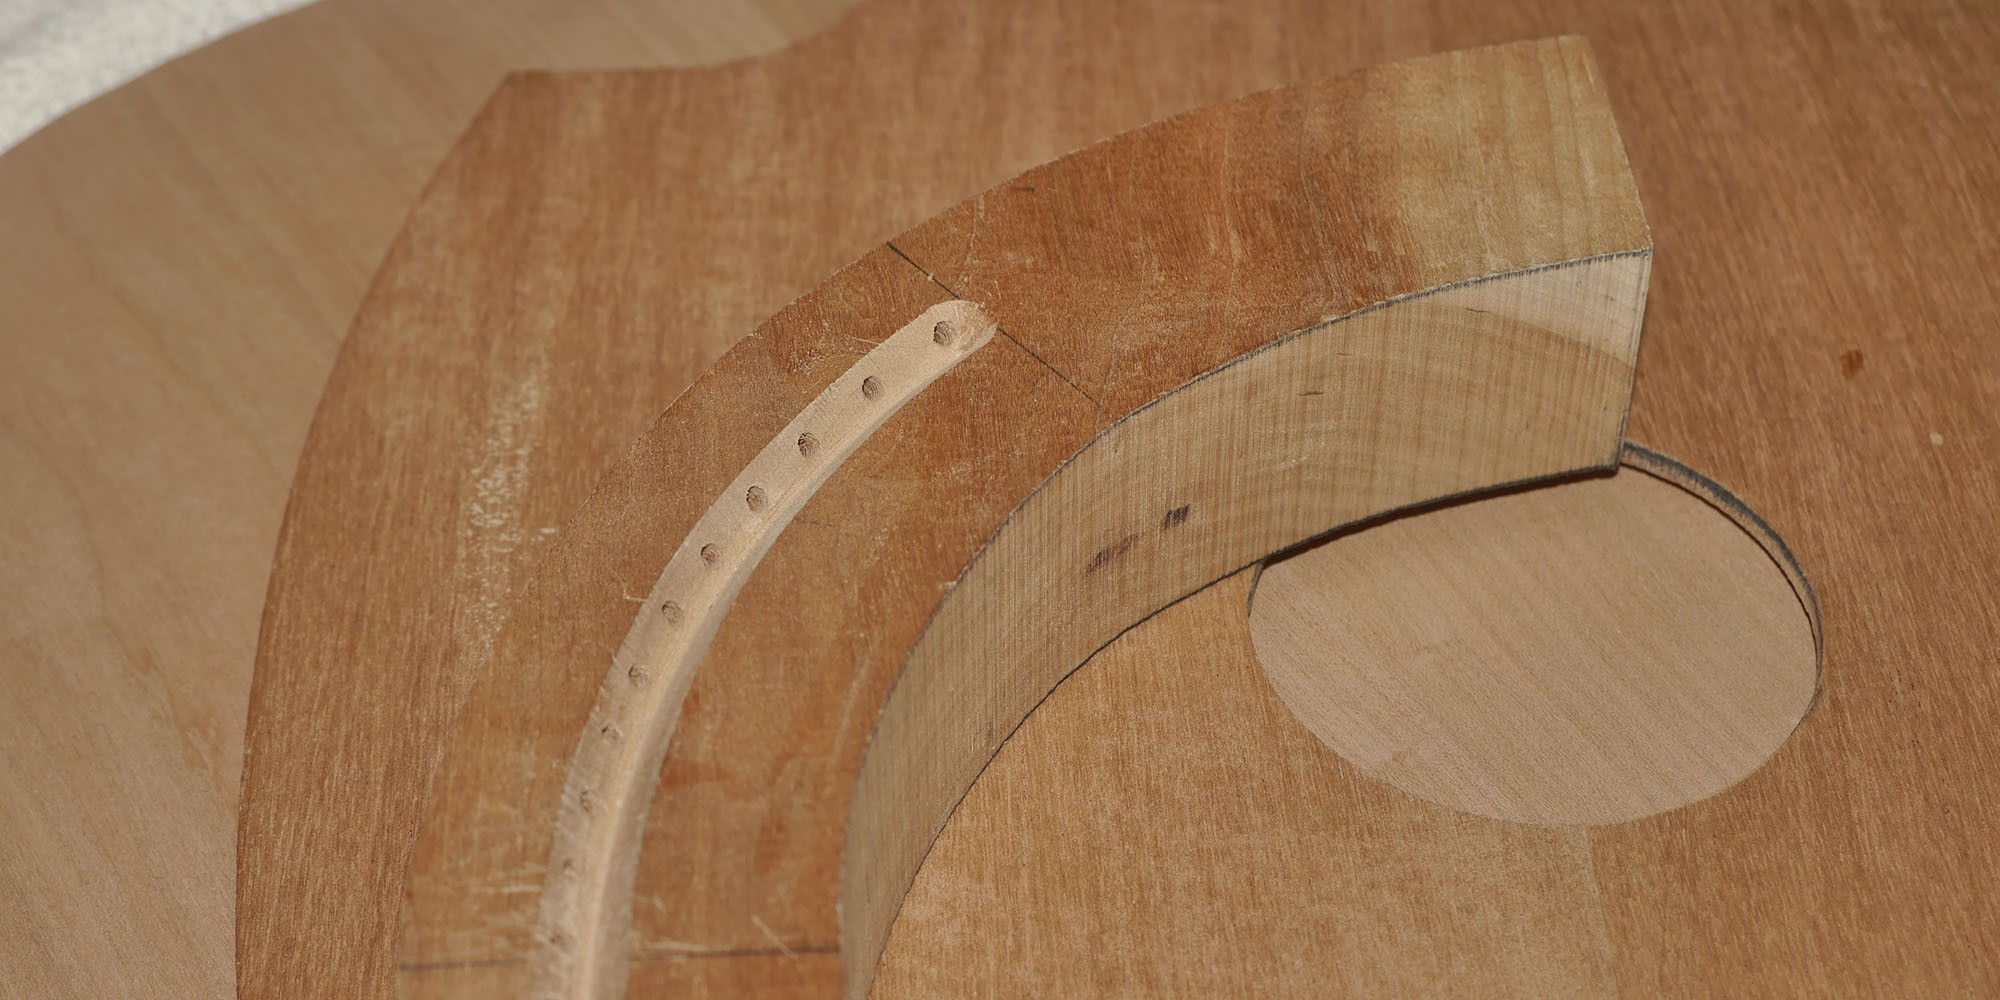 The Making of a Gabrielle Tranquility Harp